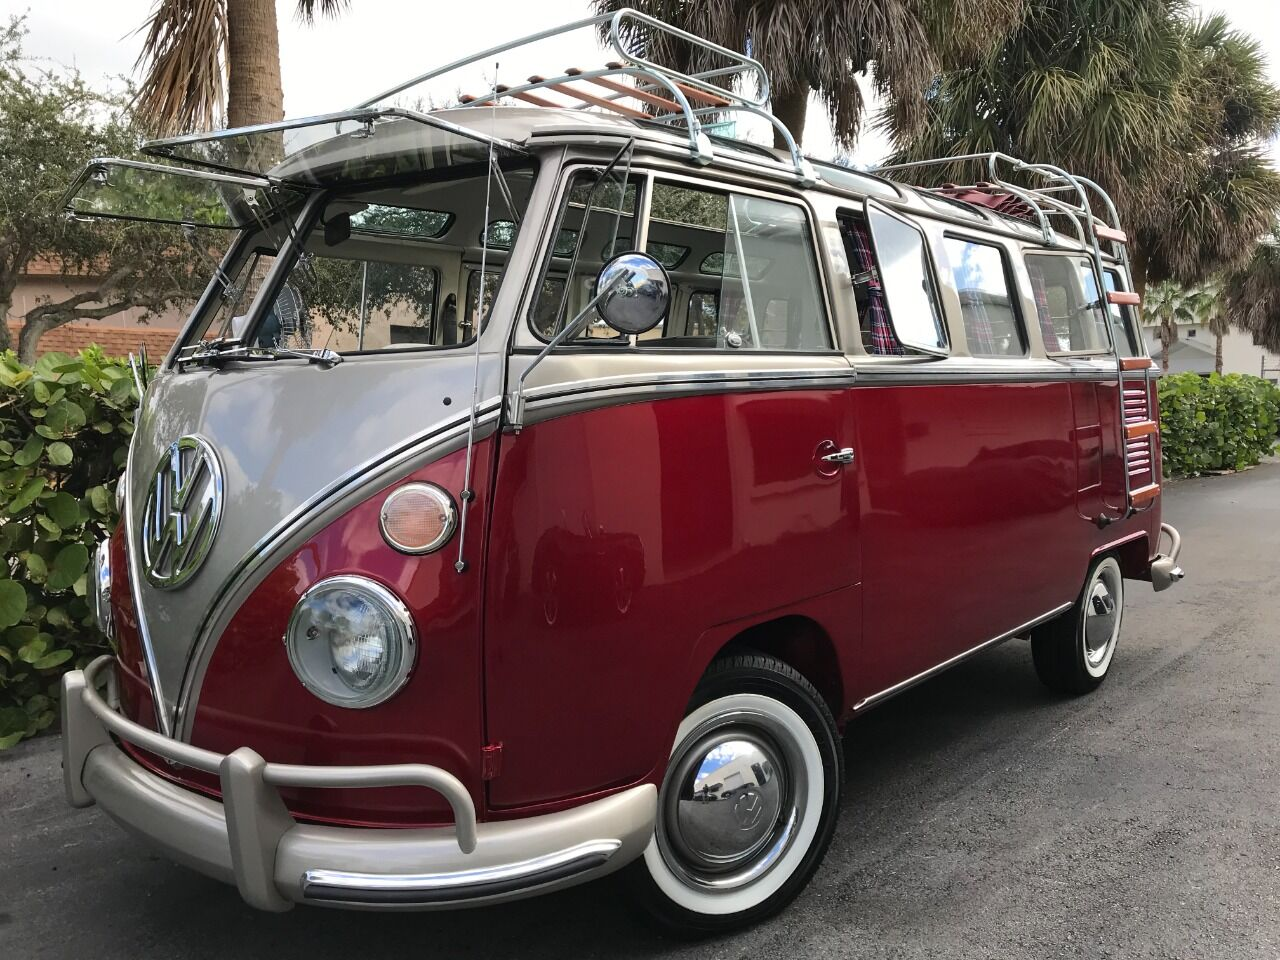 Used Volkswagen Vanagon For Sale Carsforsale Com